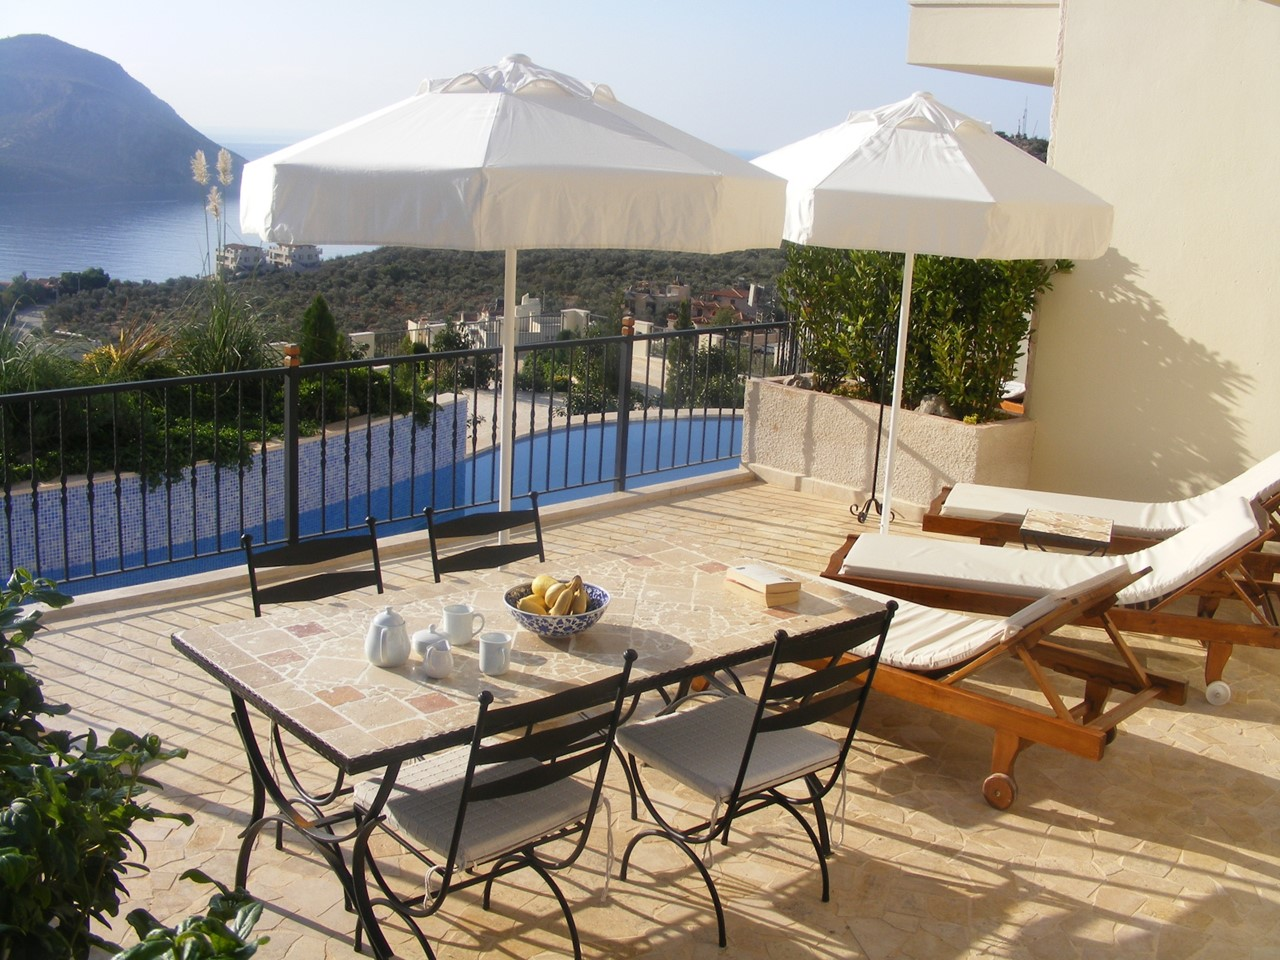 Imilia terrace with dining furniture